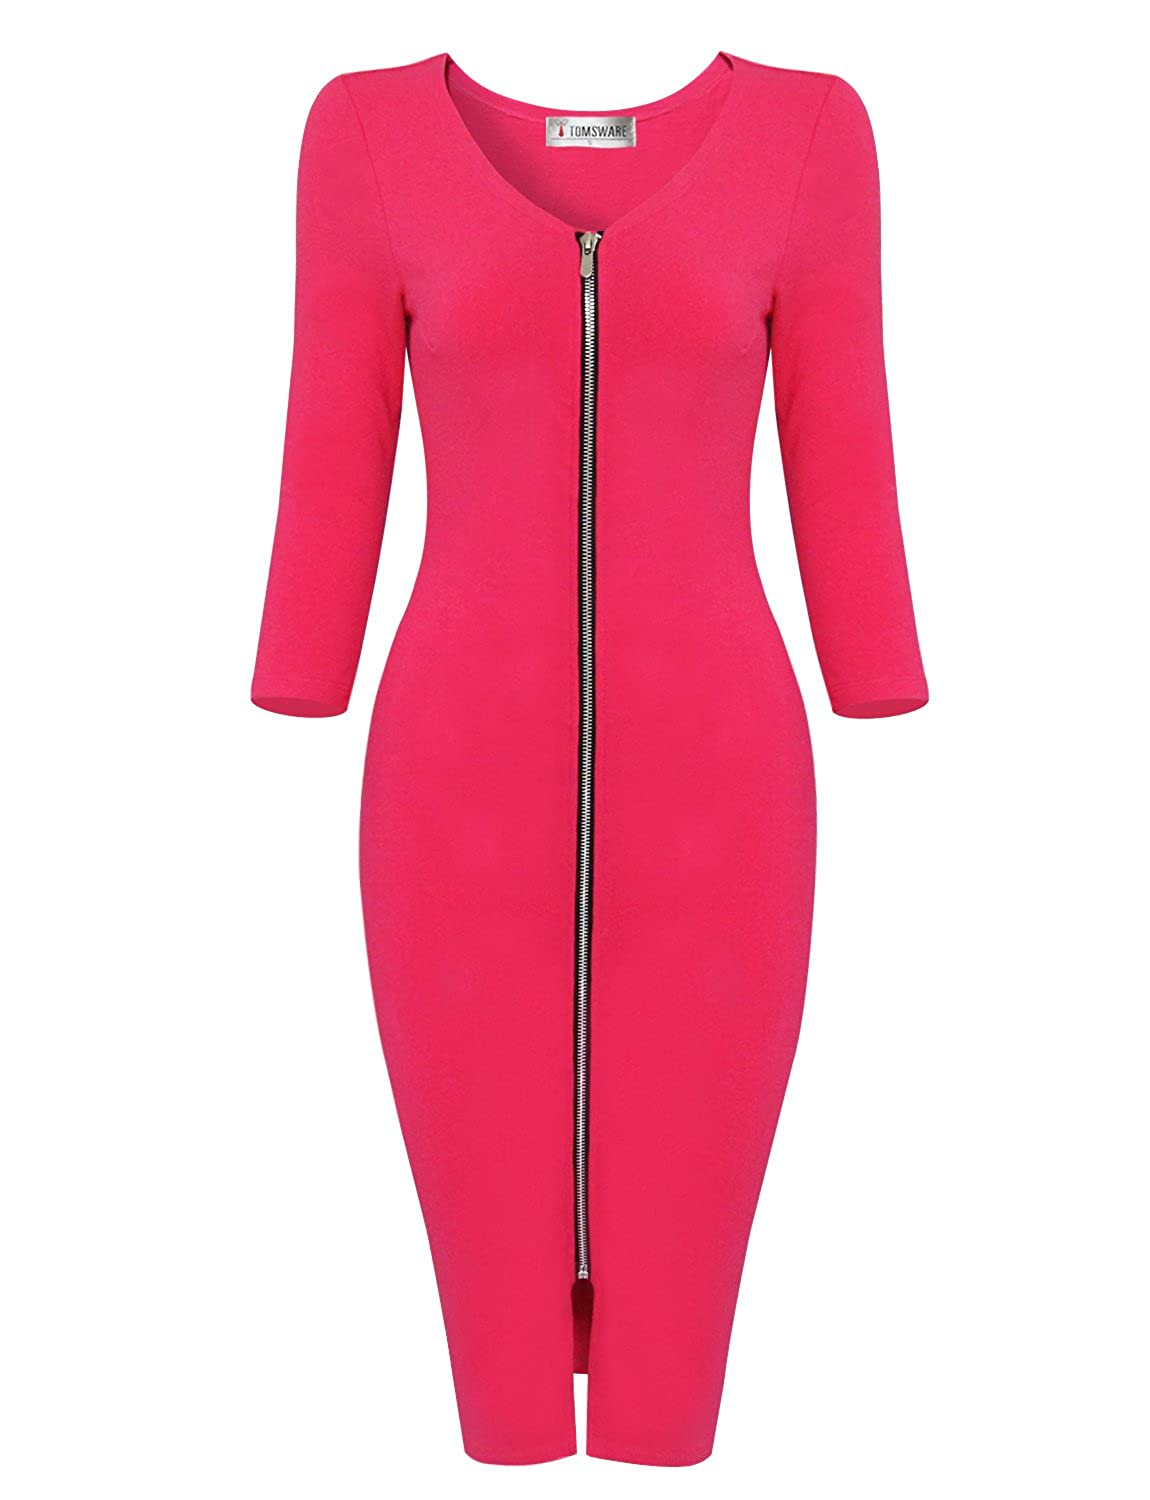 Hot Pink TAM WARE Womens Sophisticated Front Zip 3 4 Sleeve Bodycon Midi Dress